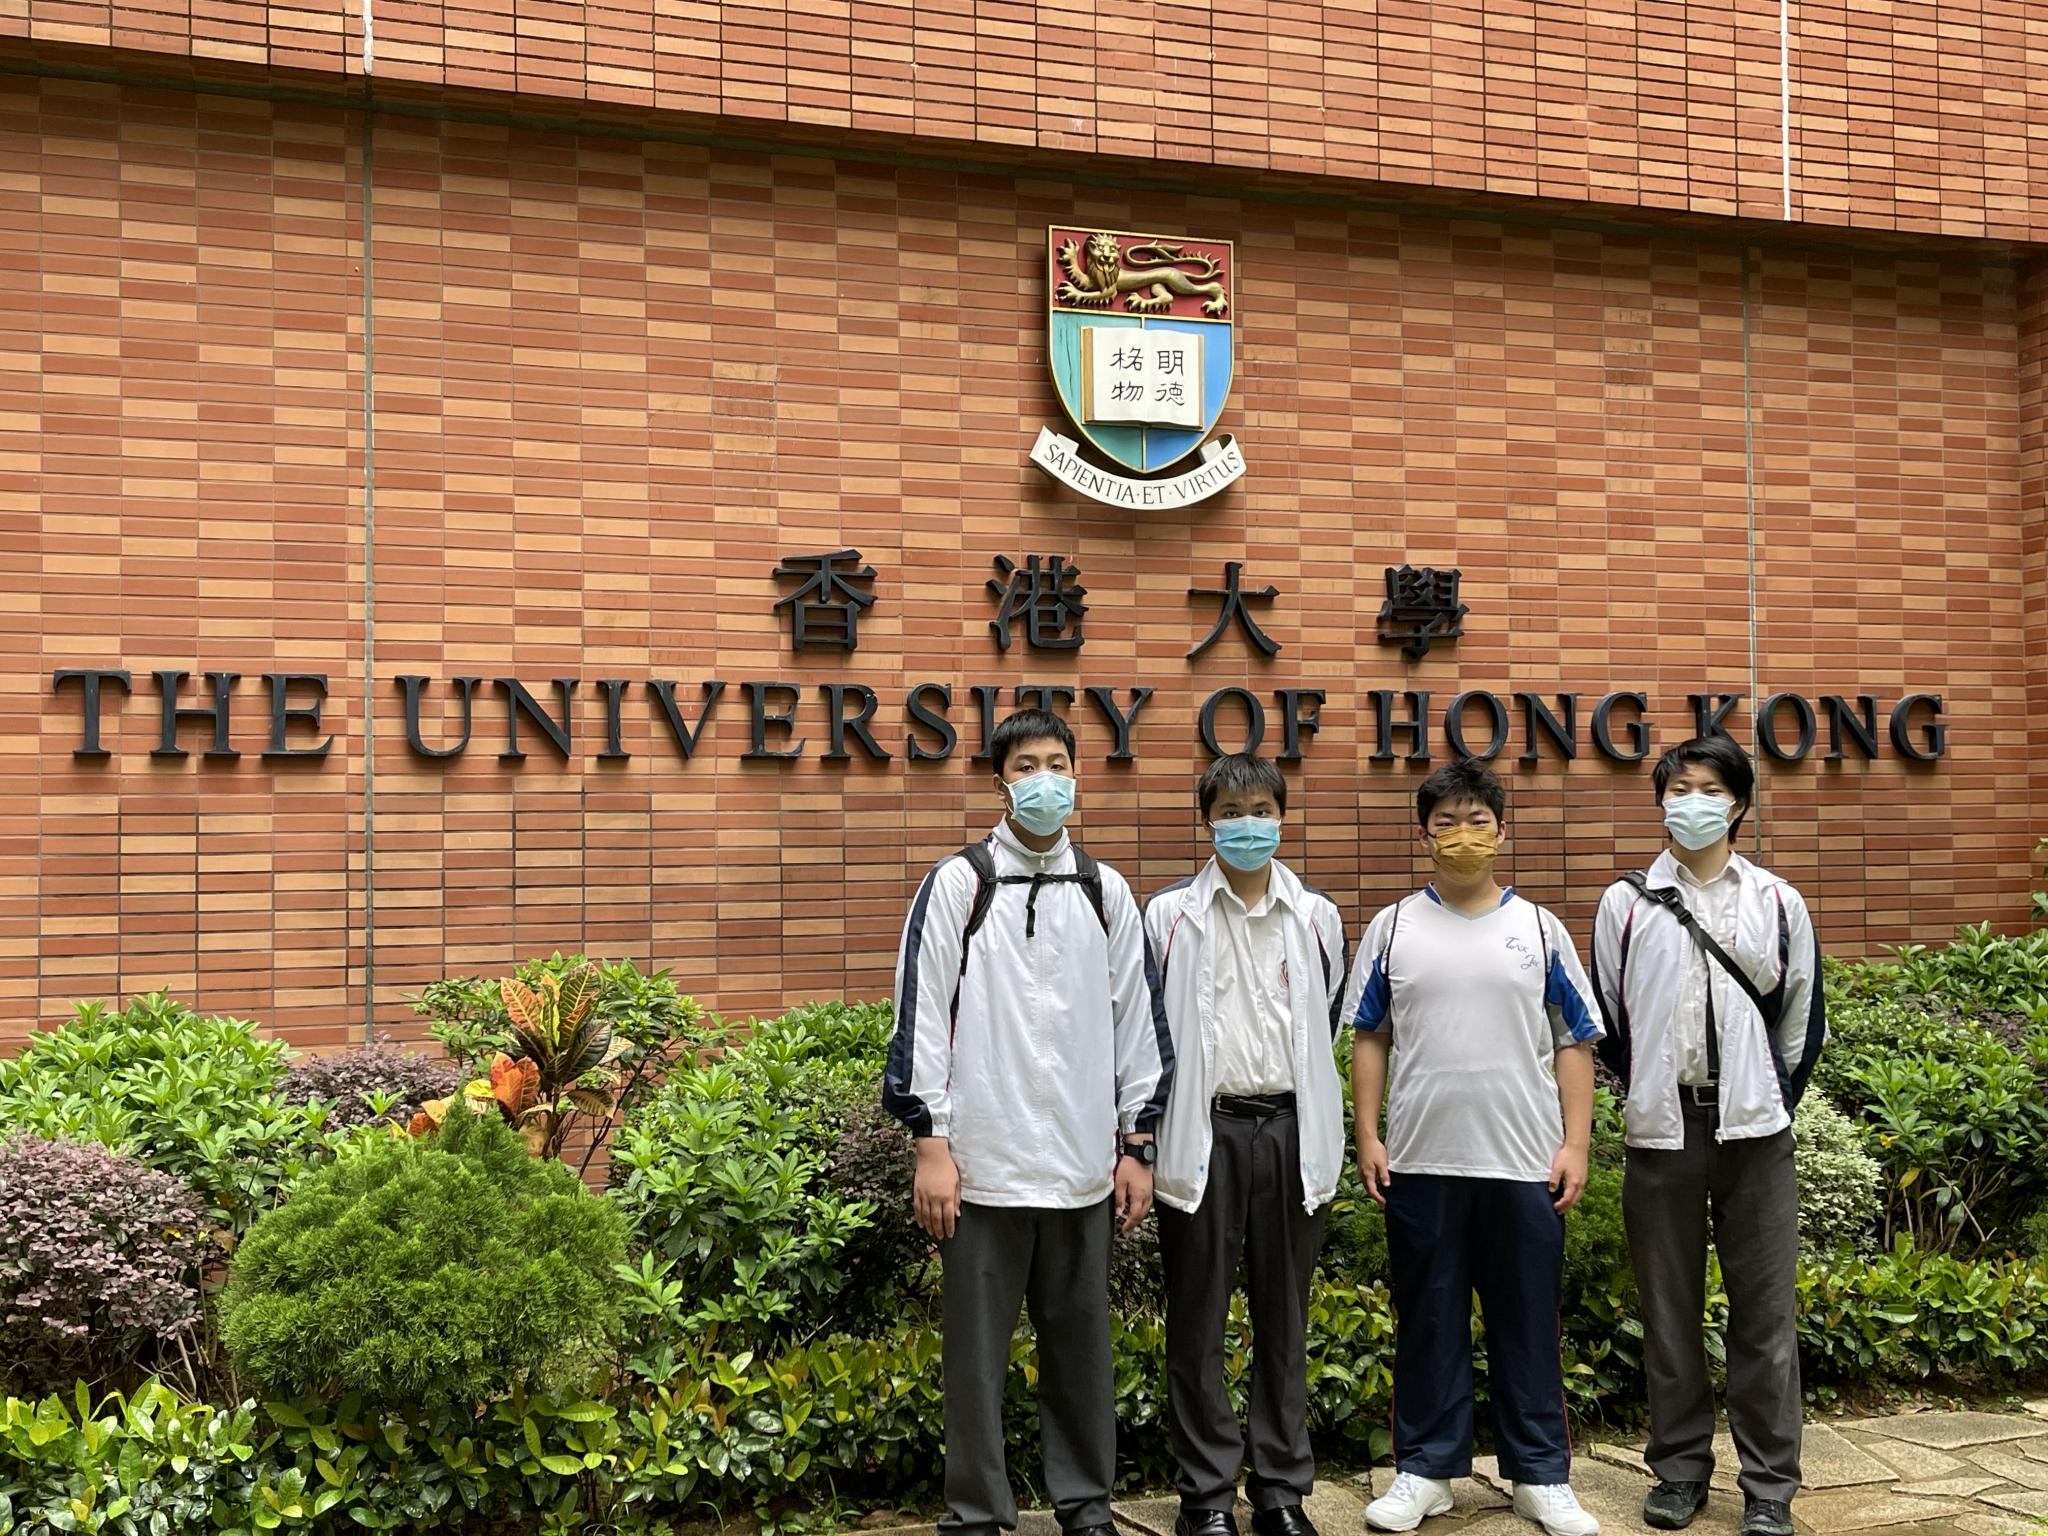 Students visited the School of Biological Sciences of the University of Hong Kong in August 2021.